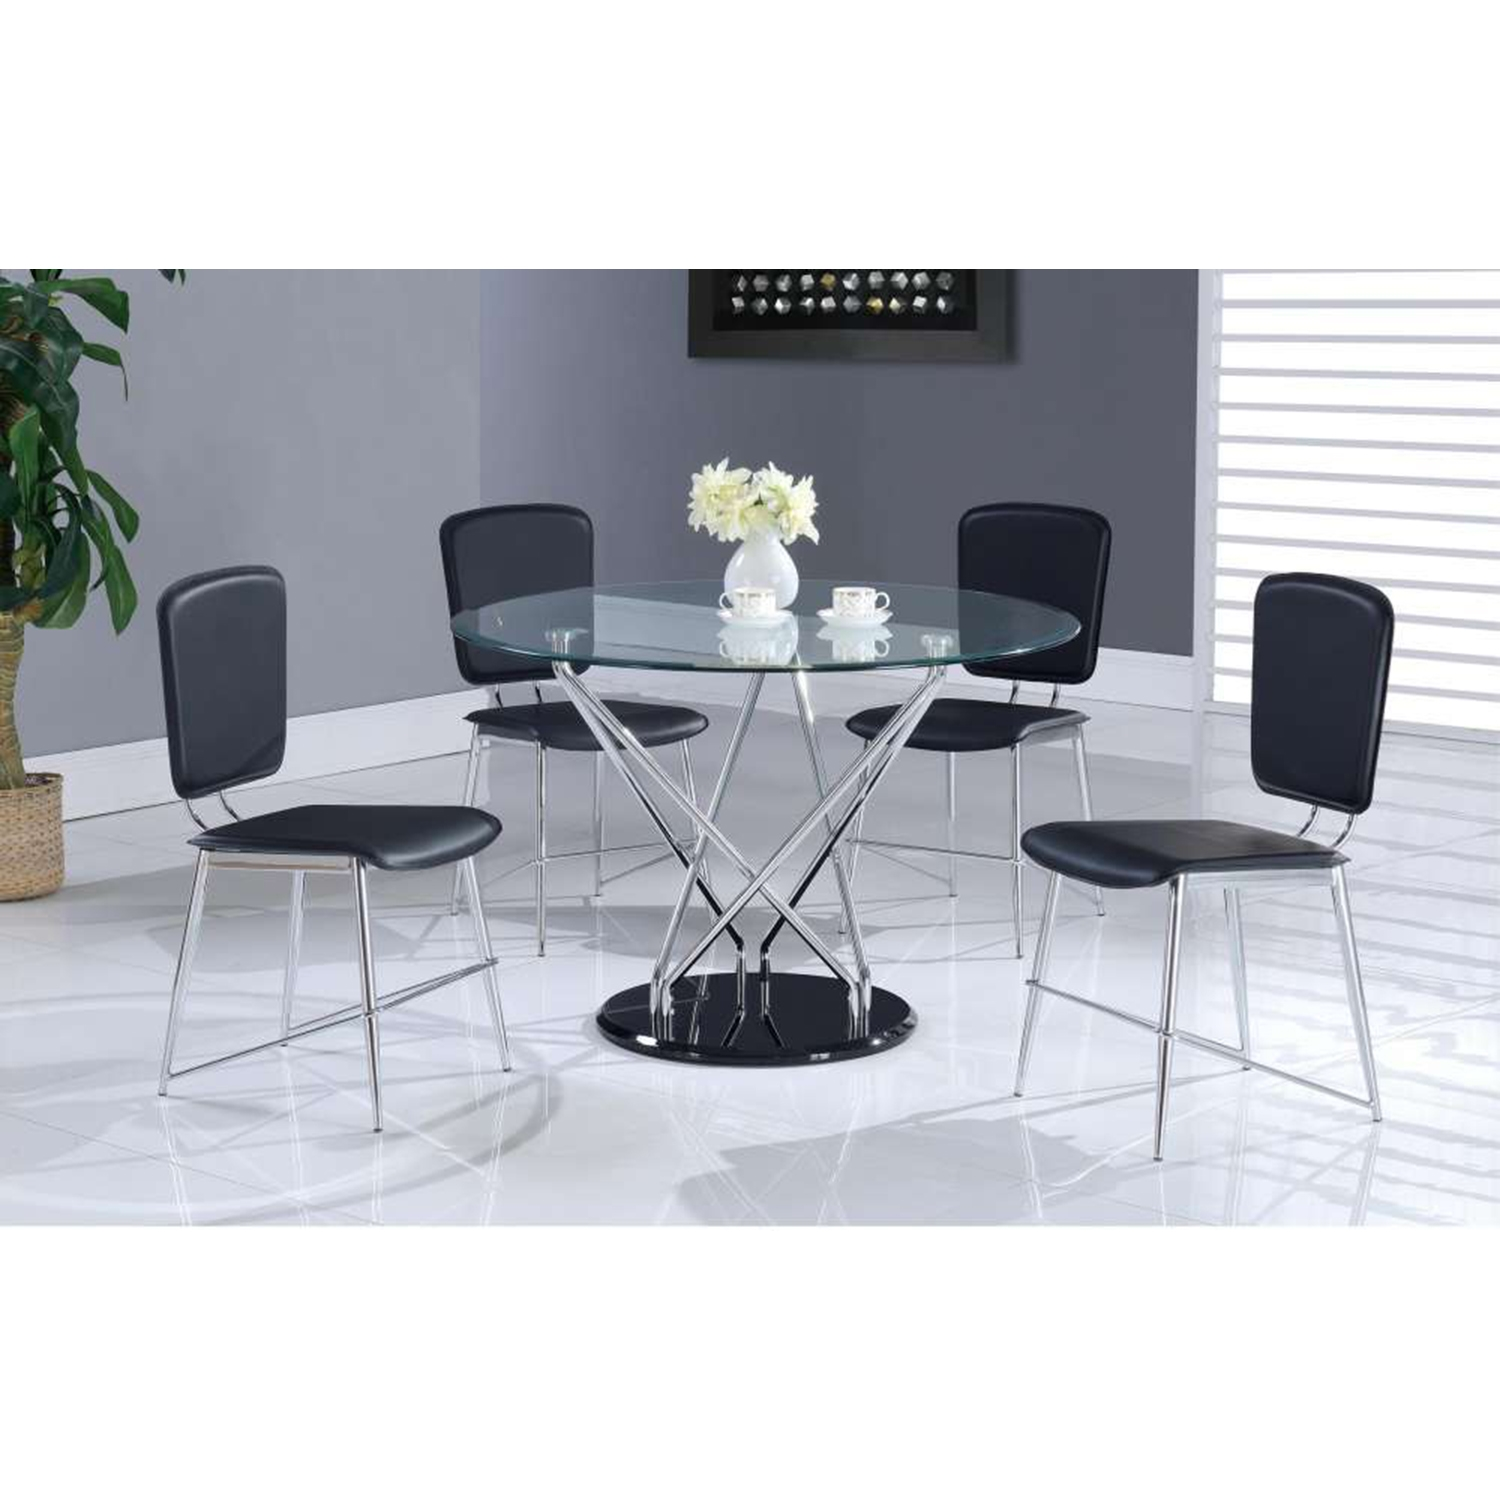 Ariana 5-Piece Dining Set, Chrome Legs - GLO-D1071DT-D1071DC-M-SET